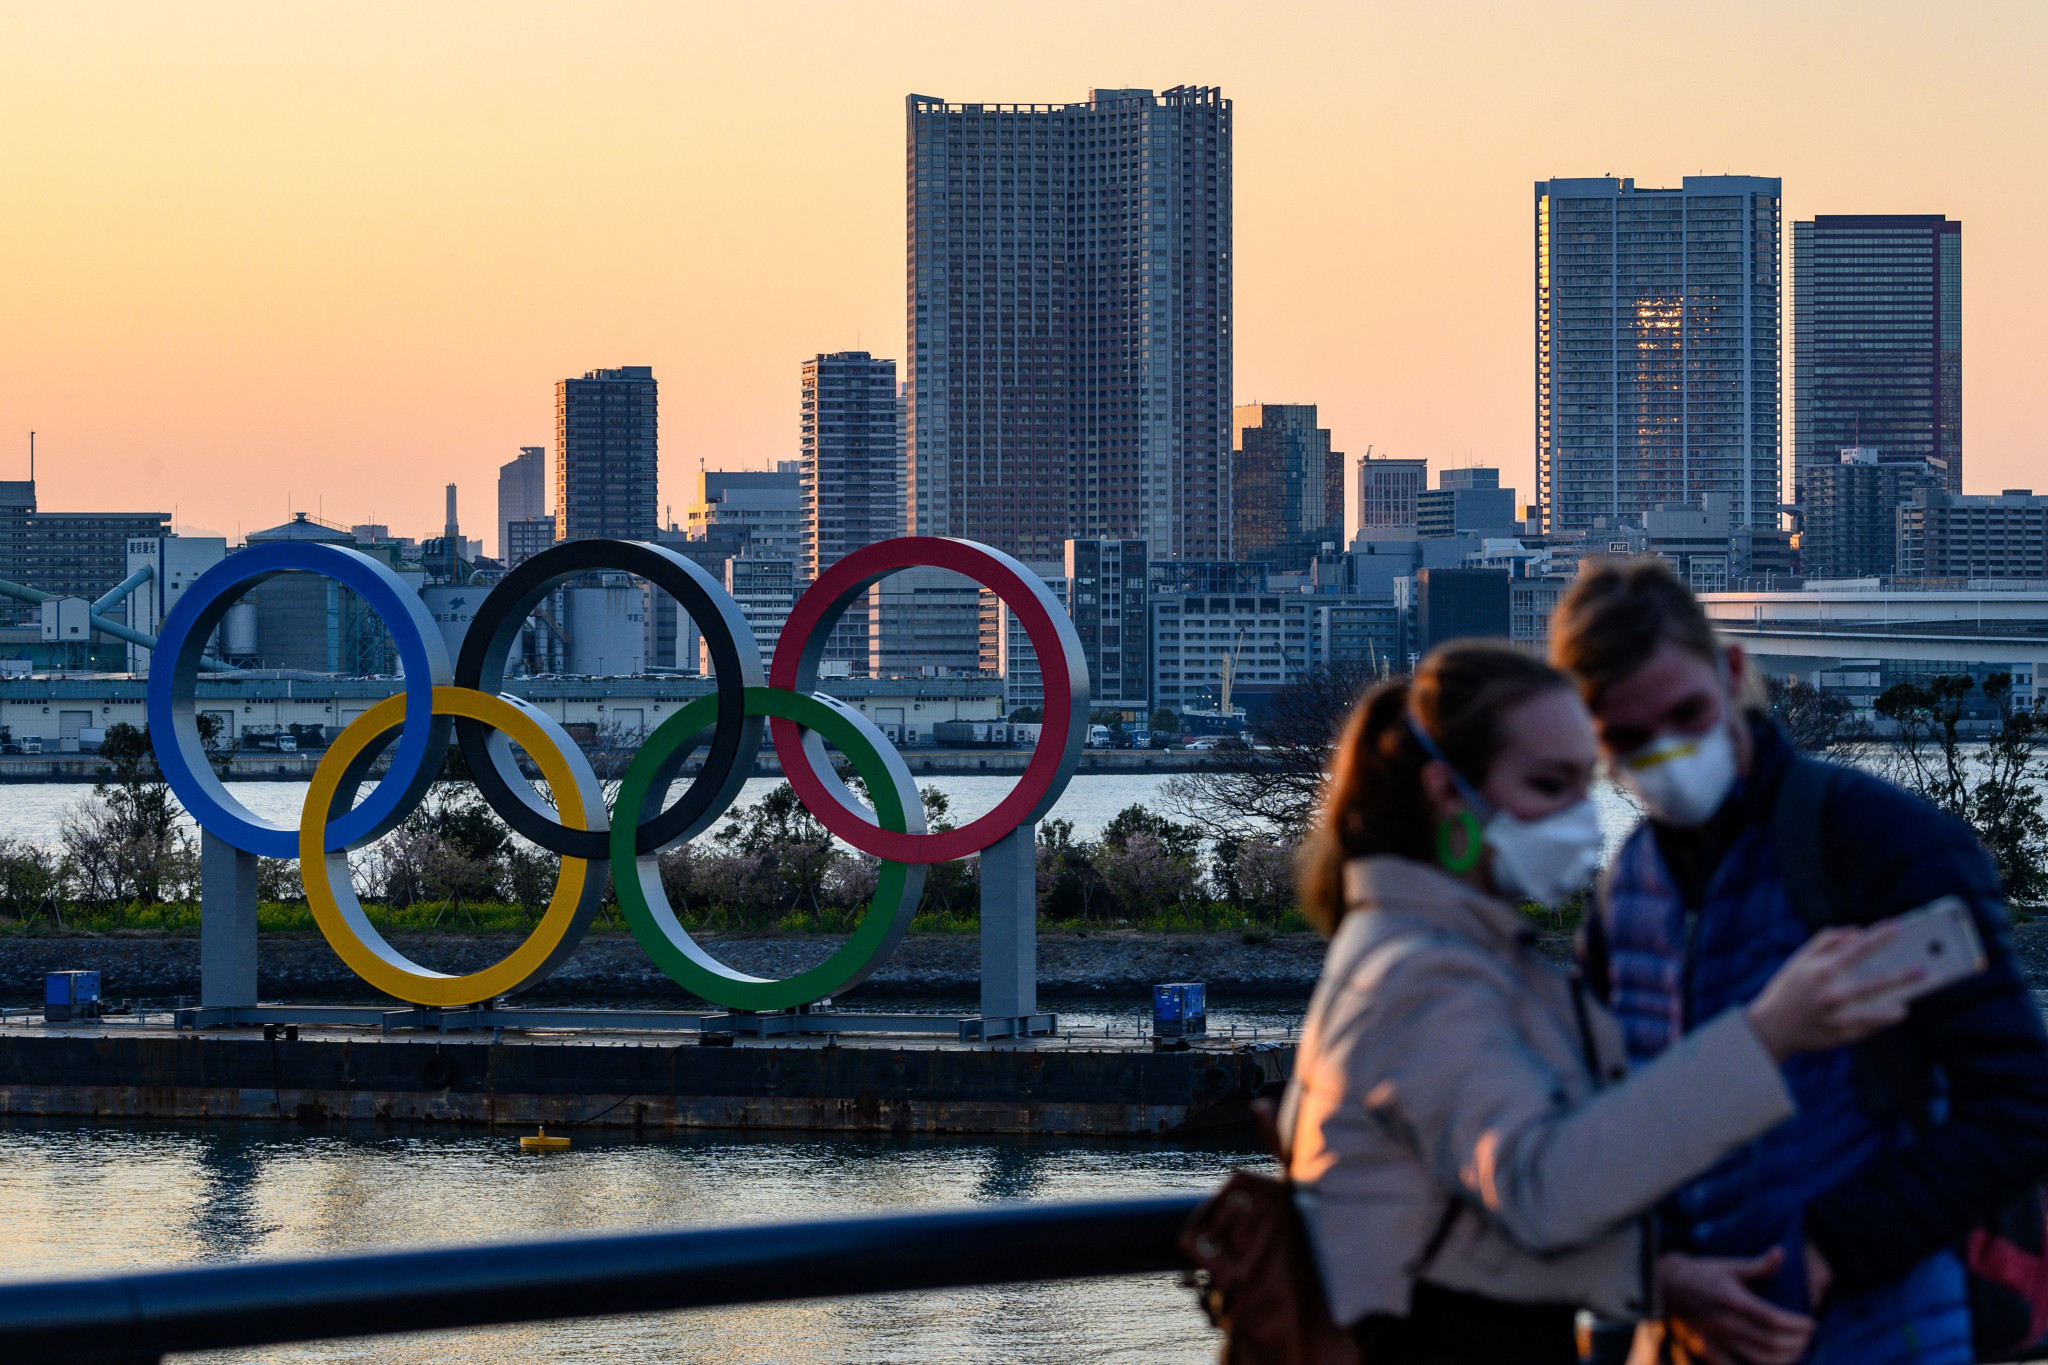 It has been suggested that the Tokyo 2020 Olympic Games could be cancelled or postponed because of fears over the coronavirus outbreak ©Getty Images